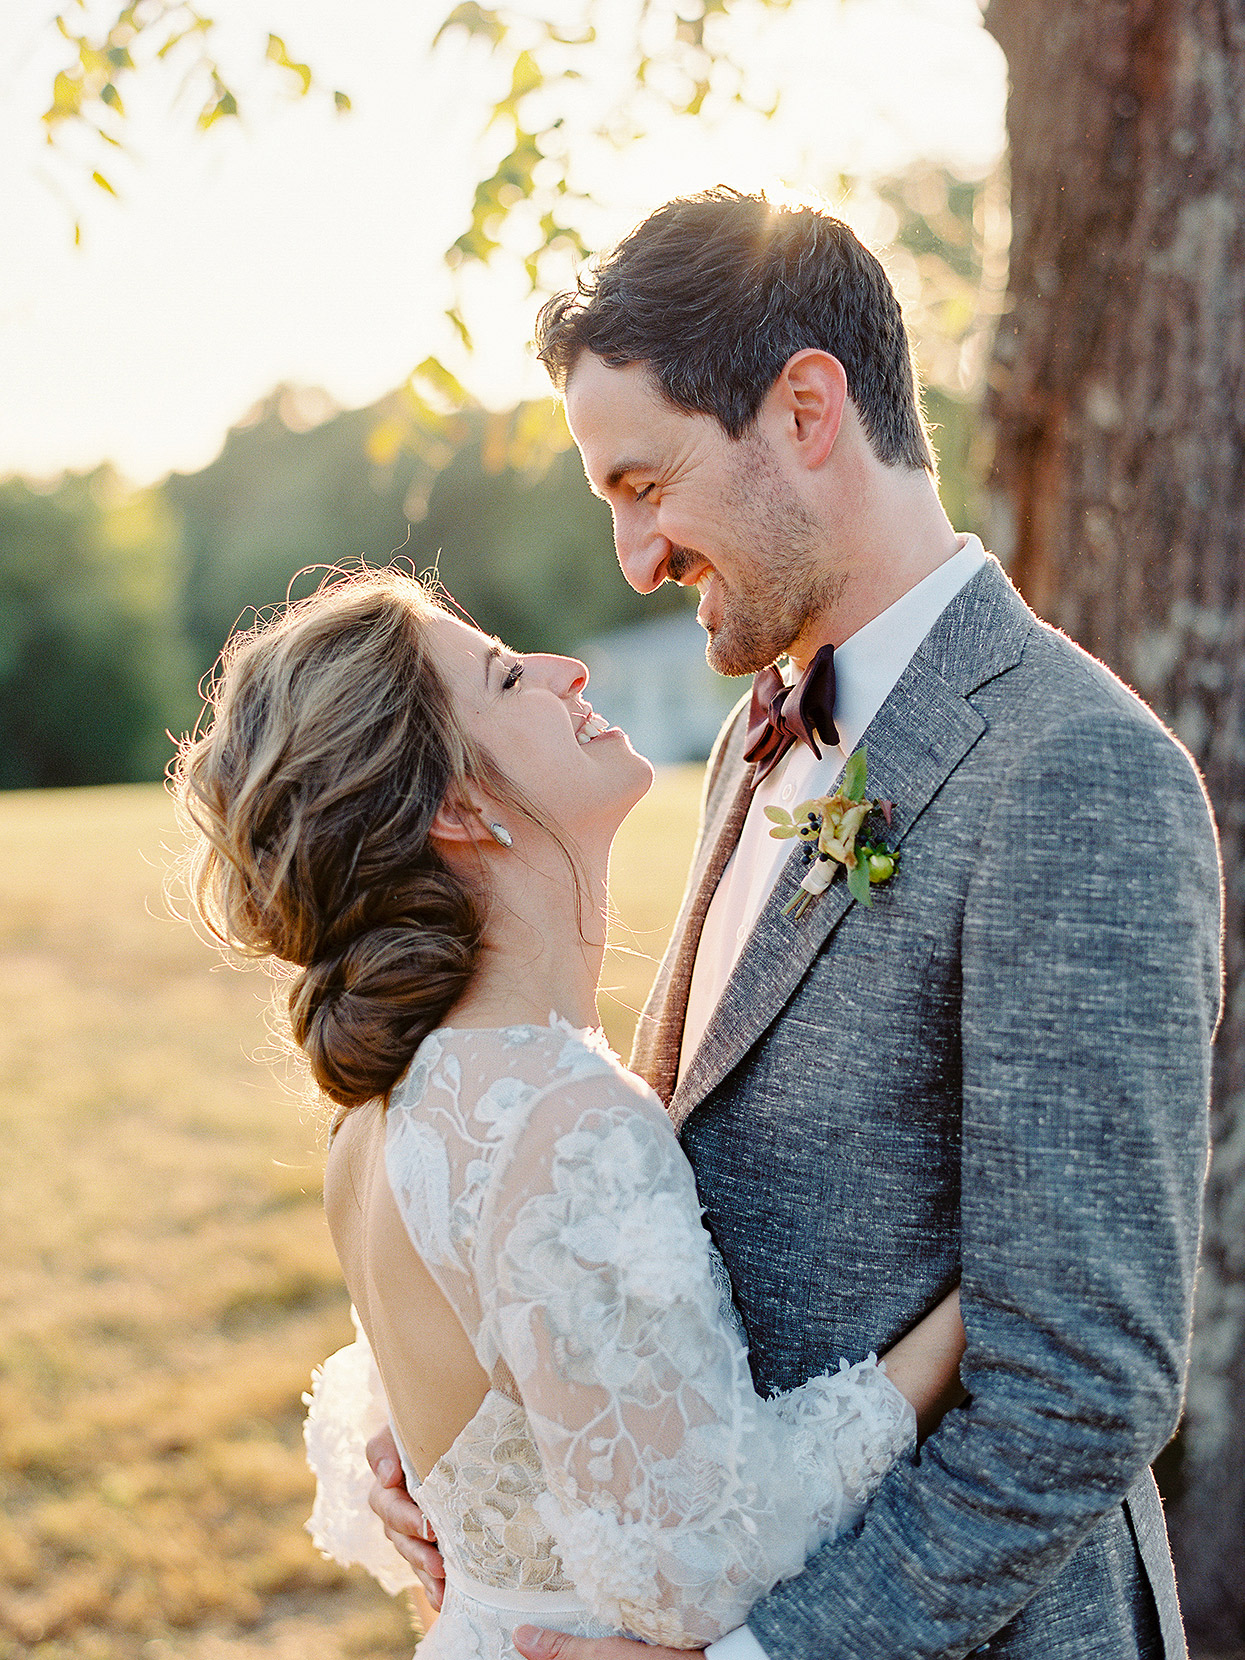 outdoor portrait of Clair and Dan smiling and embracing